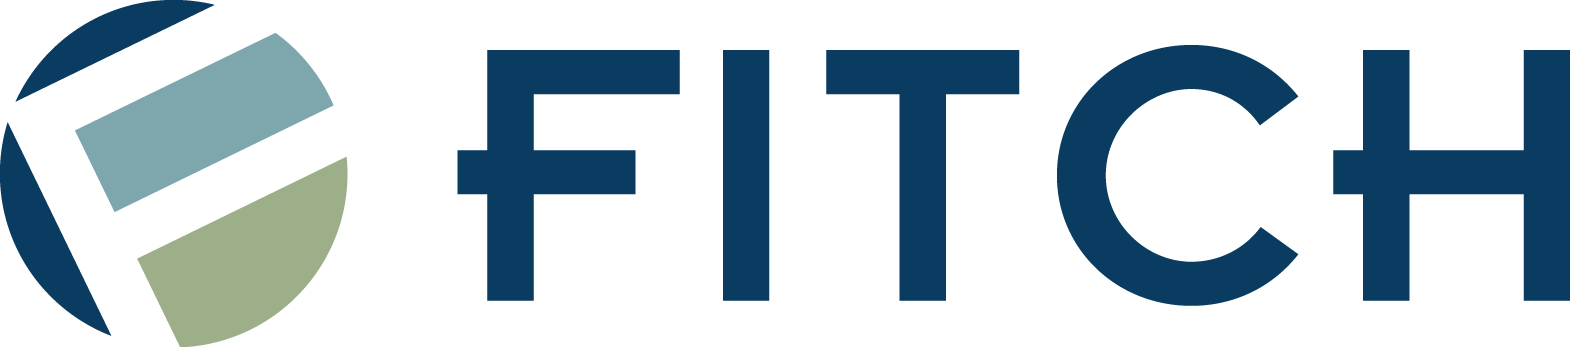 Fitch Law Partners